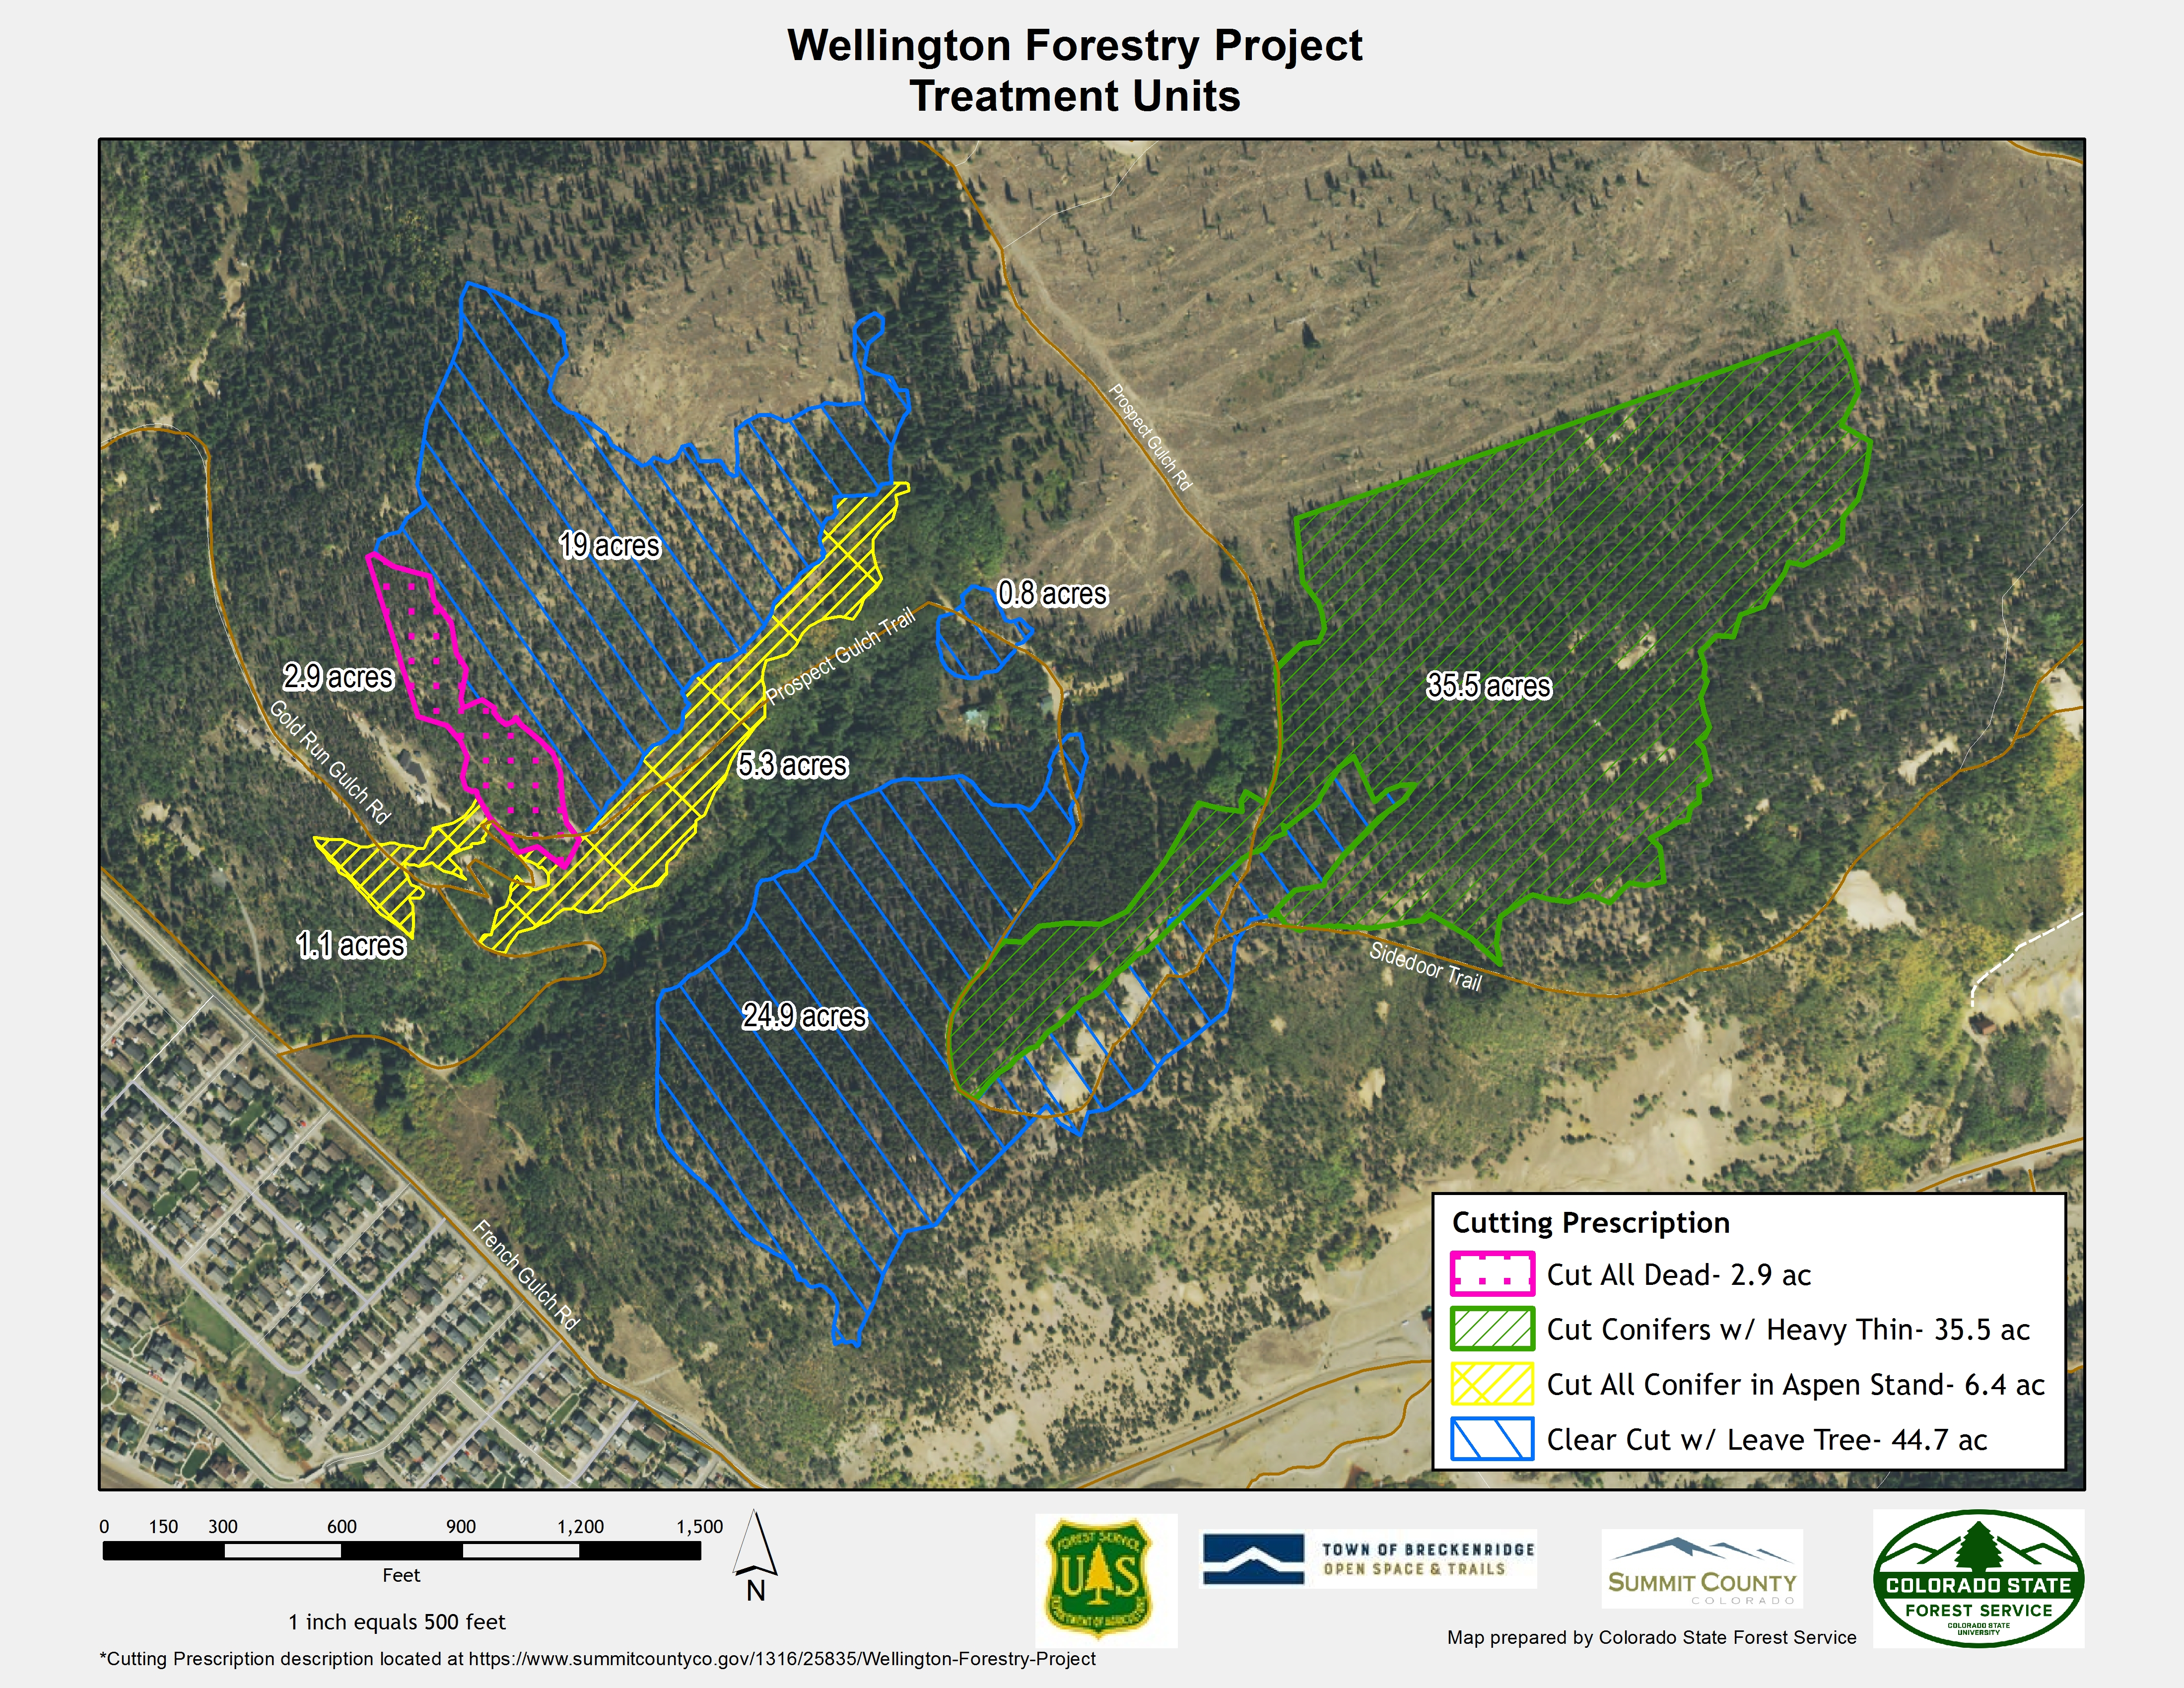 Map showing ownership of land included in Wellington Forestry Project